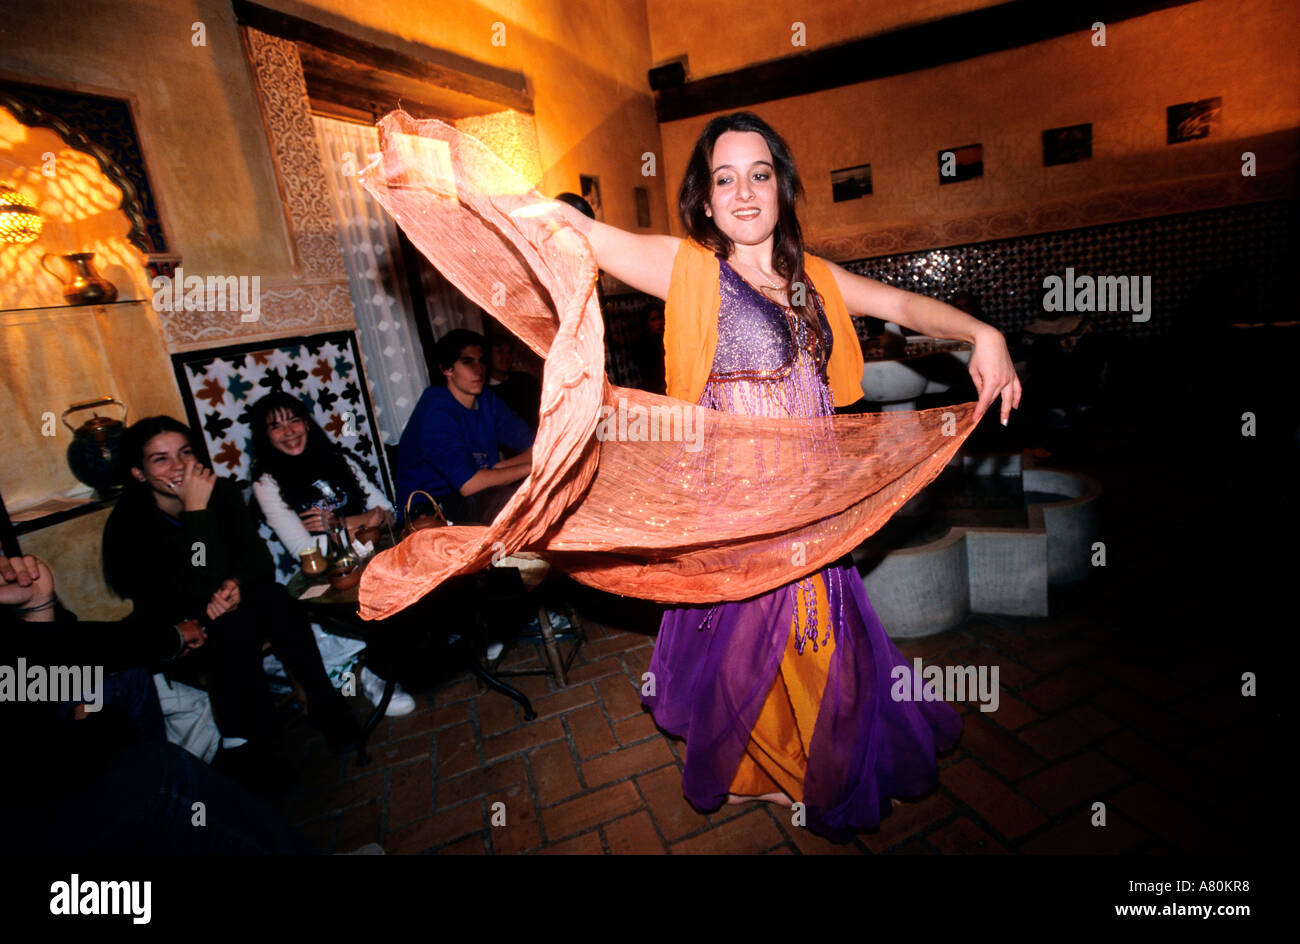 Spain, Andalusia, Granada, Turkish baths, belly dancer at the teteria (tearoom) in the Arab Arab District of Albayzin Stock Photo